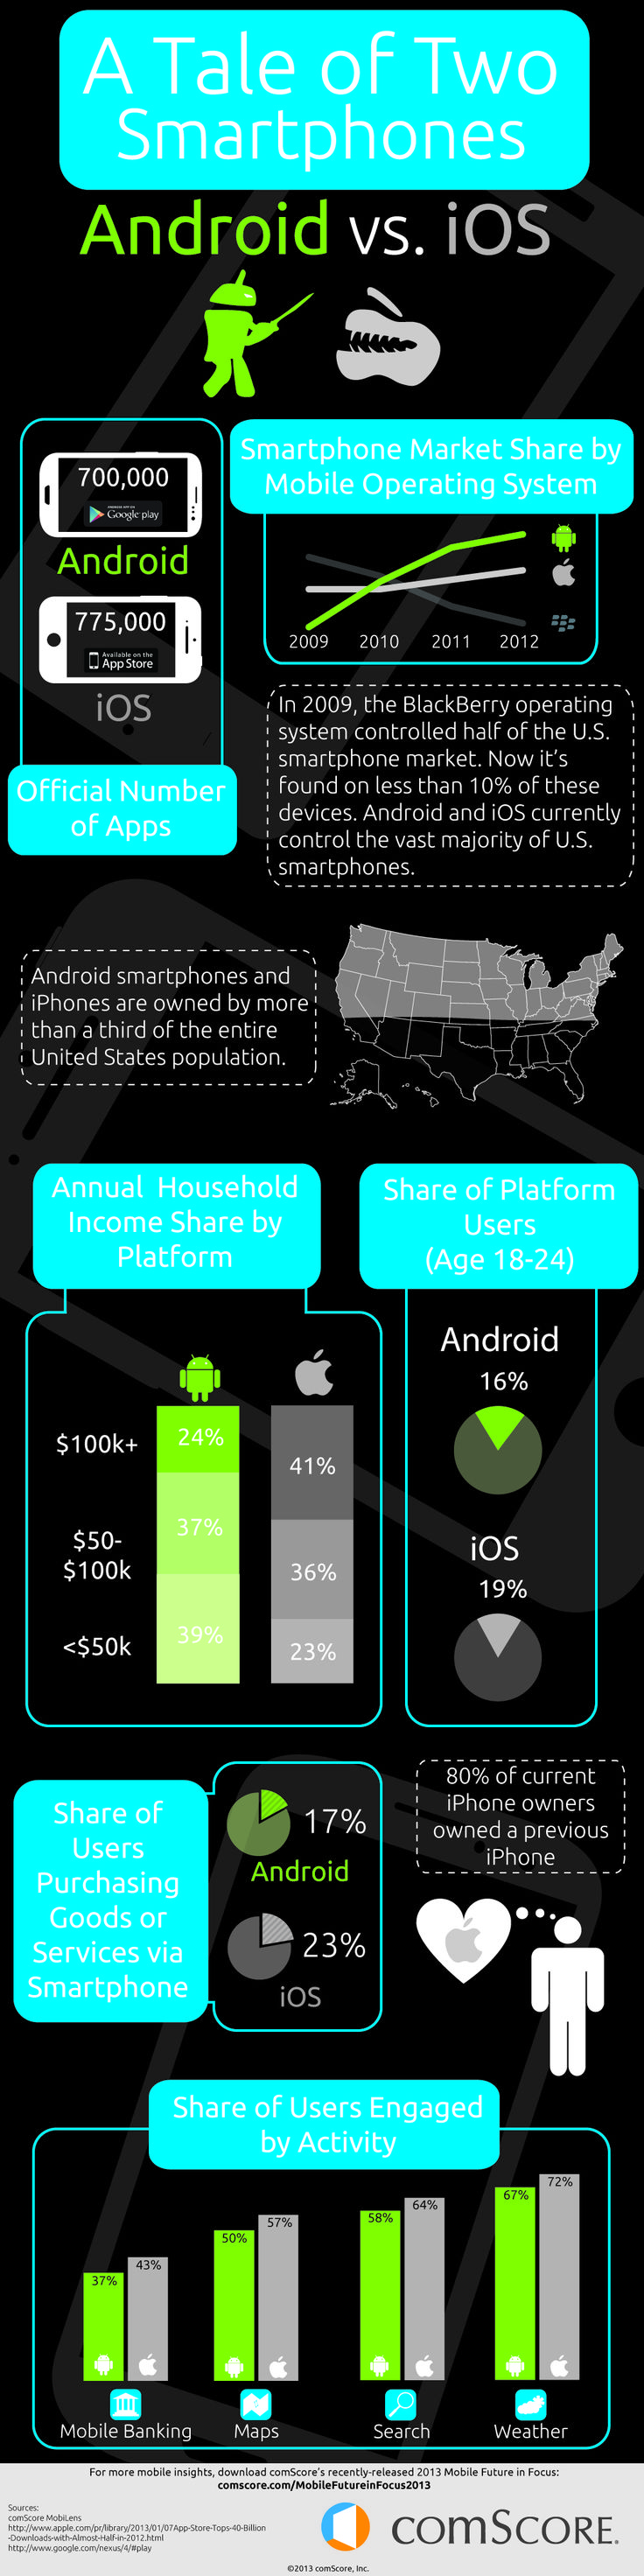 Android Vs. iOS: Users Differences Every Developer Should Know: INFOGRAPHIC - AppNewser